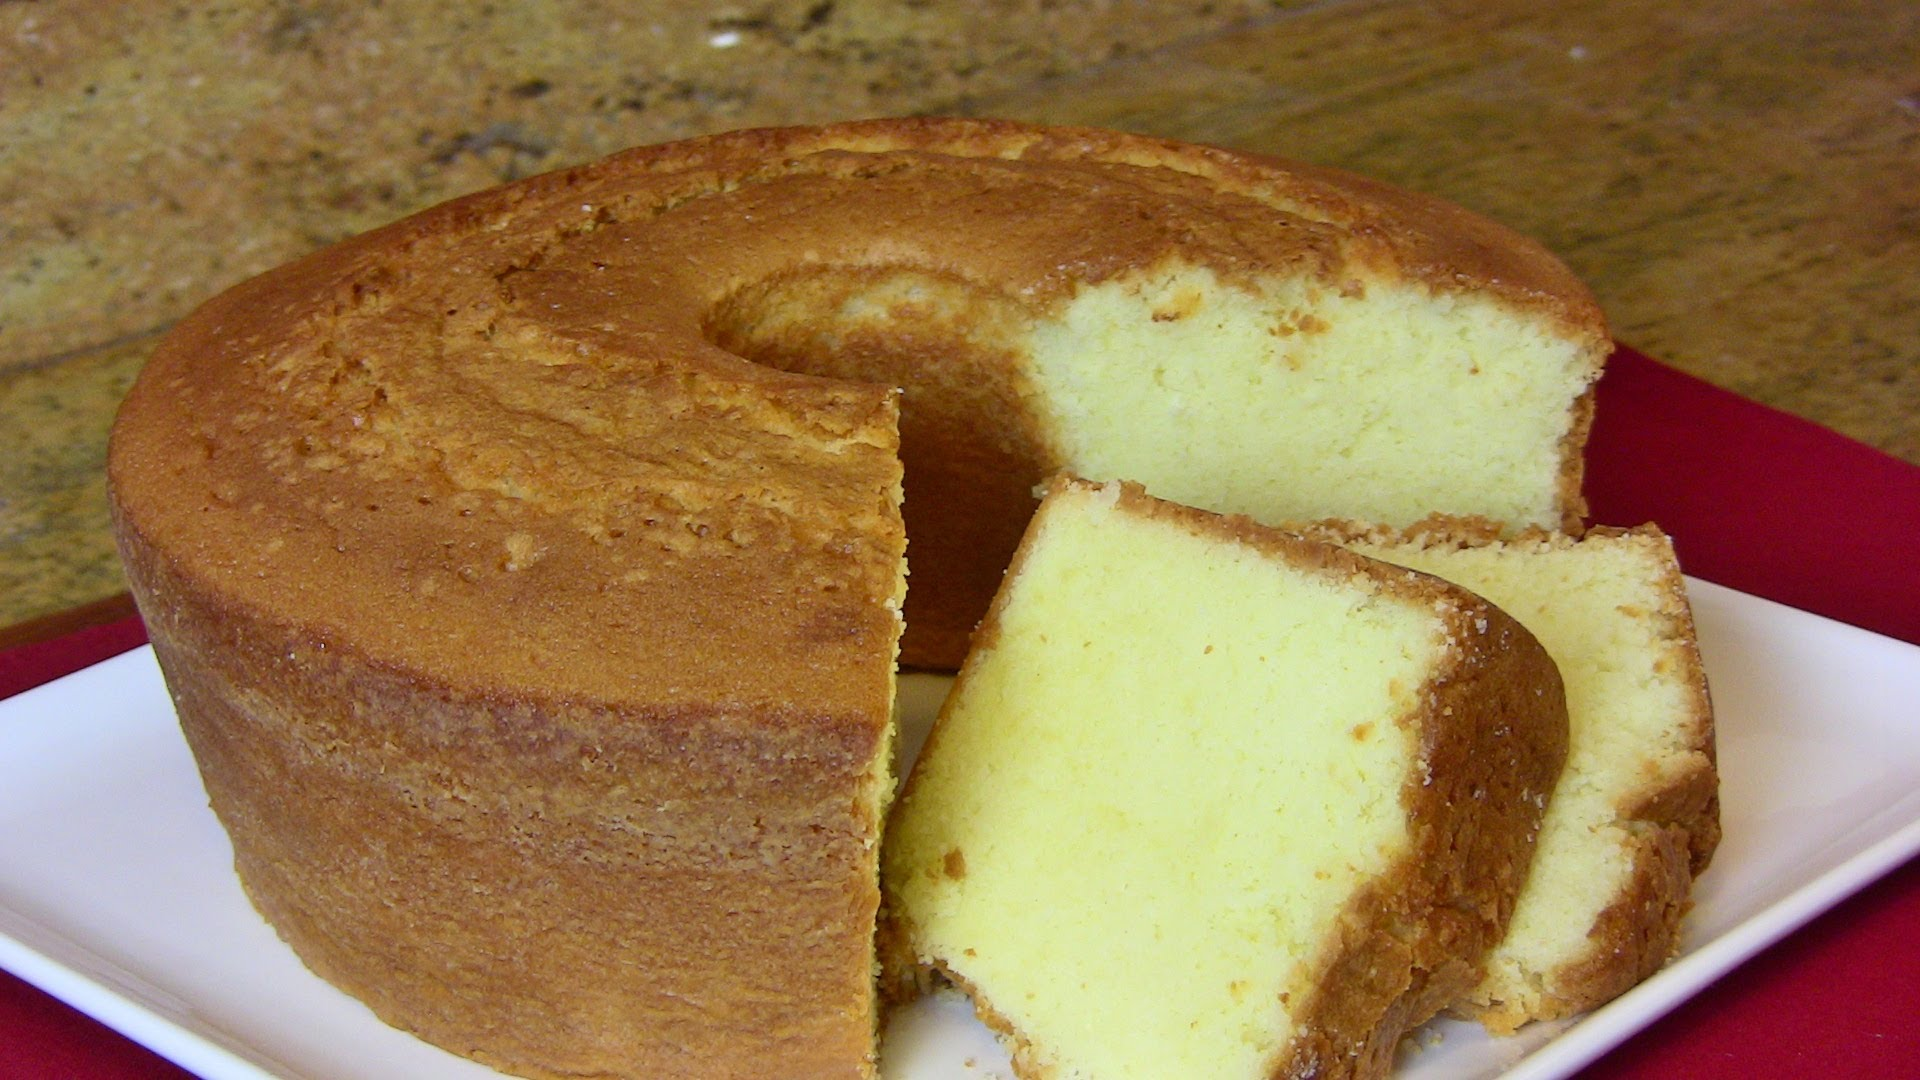 Homemade Up Pound Cake